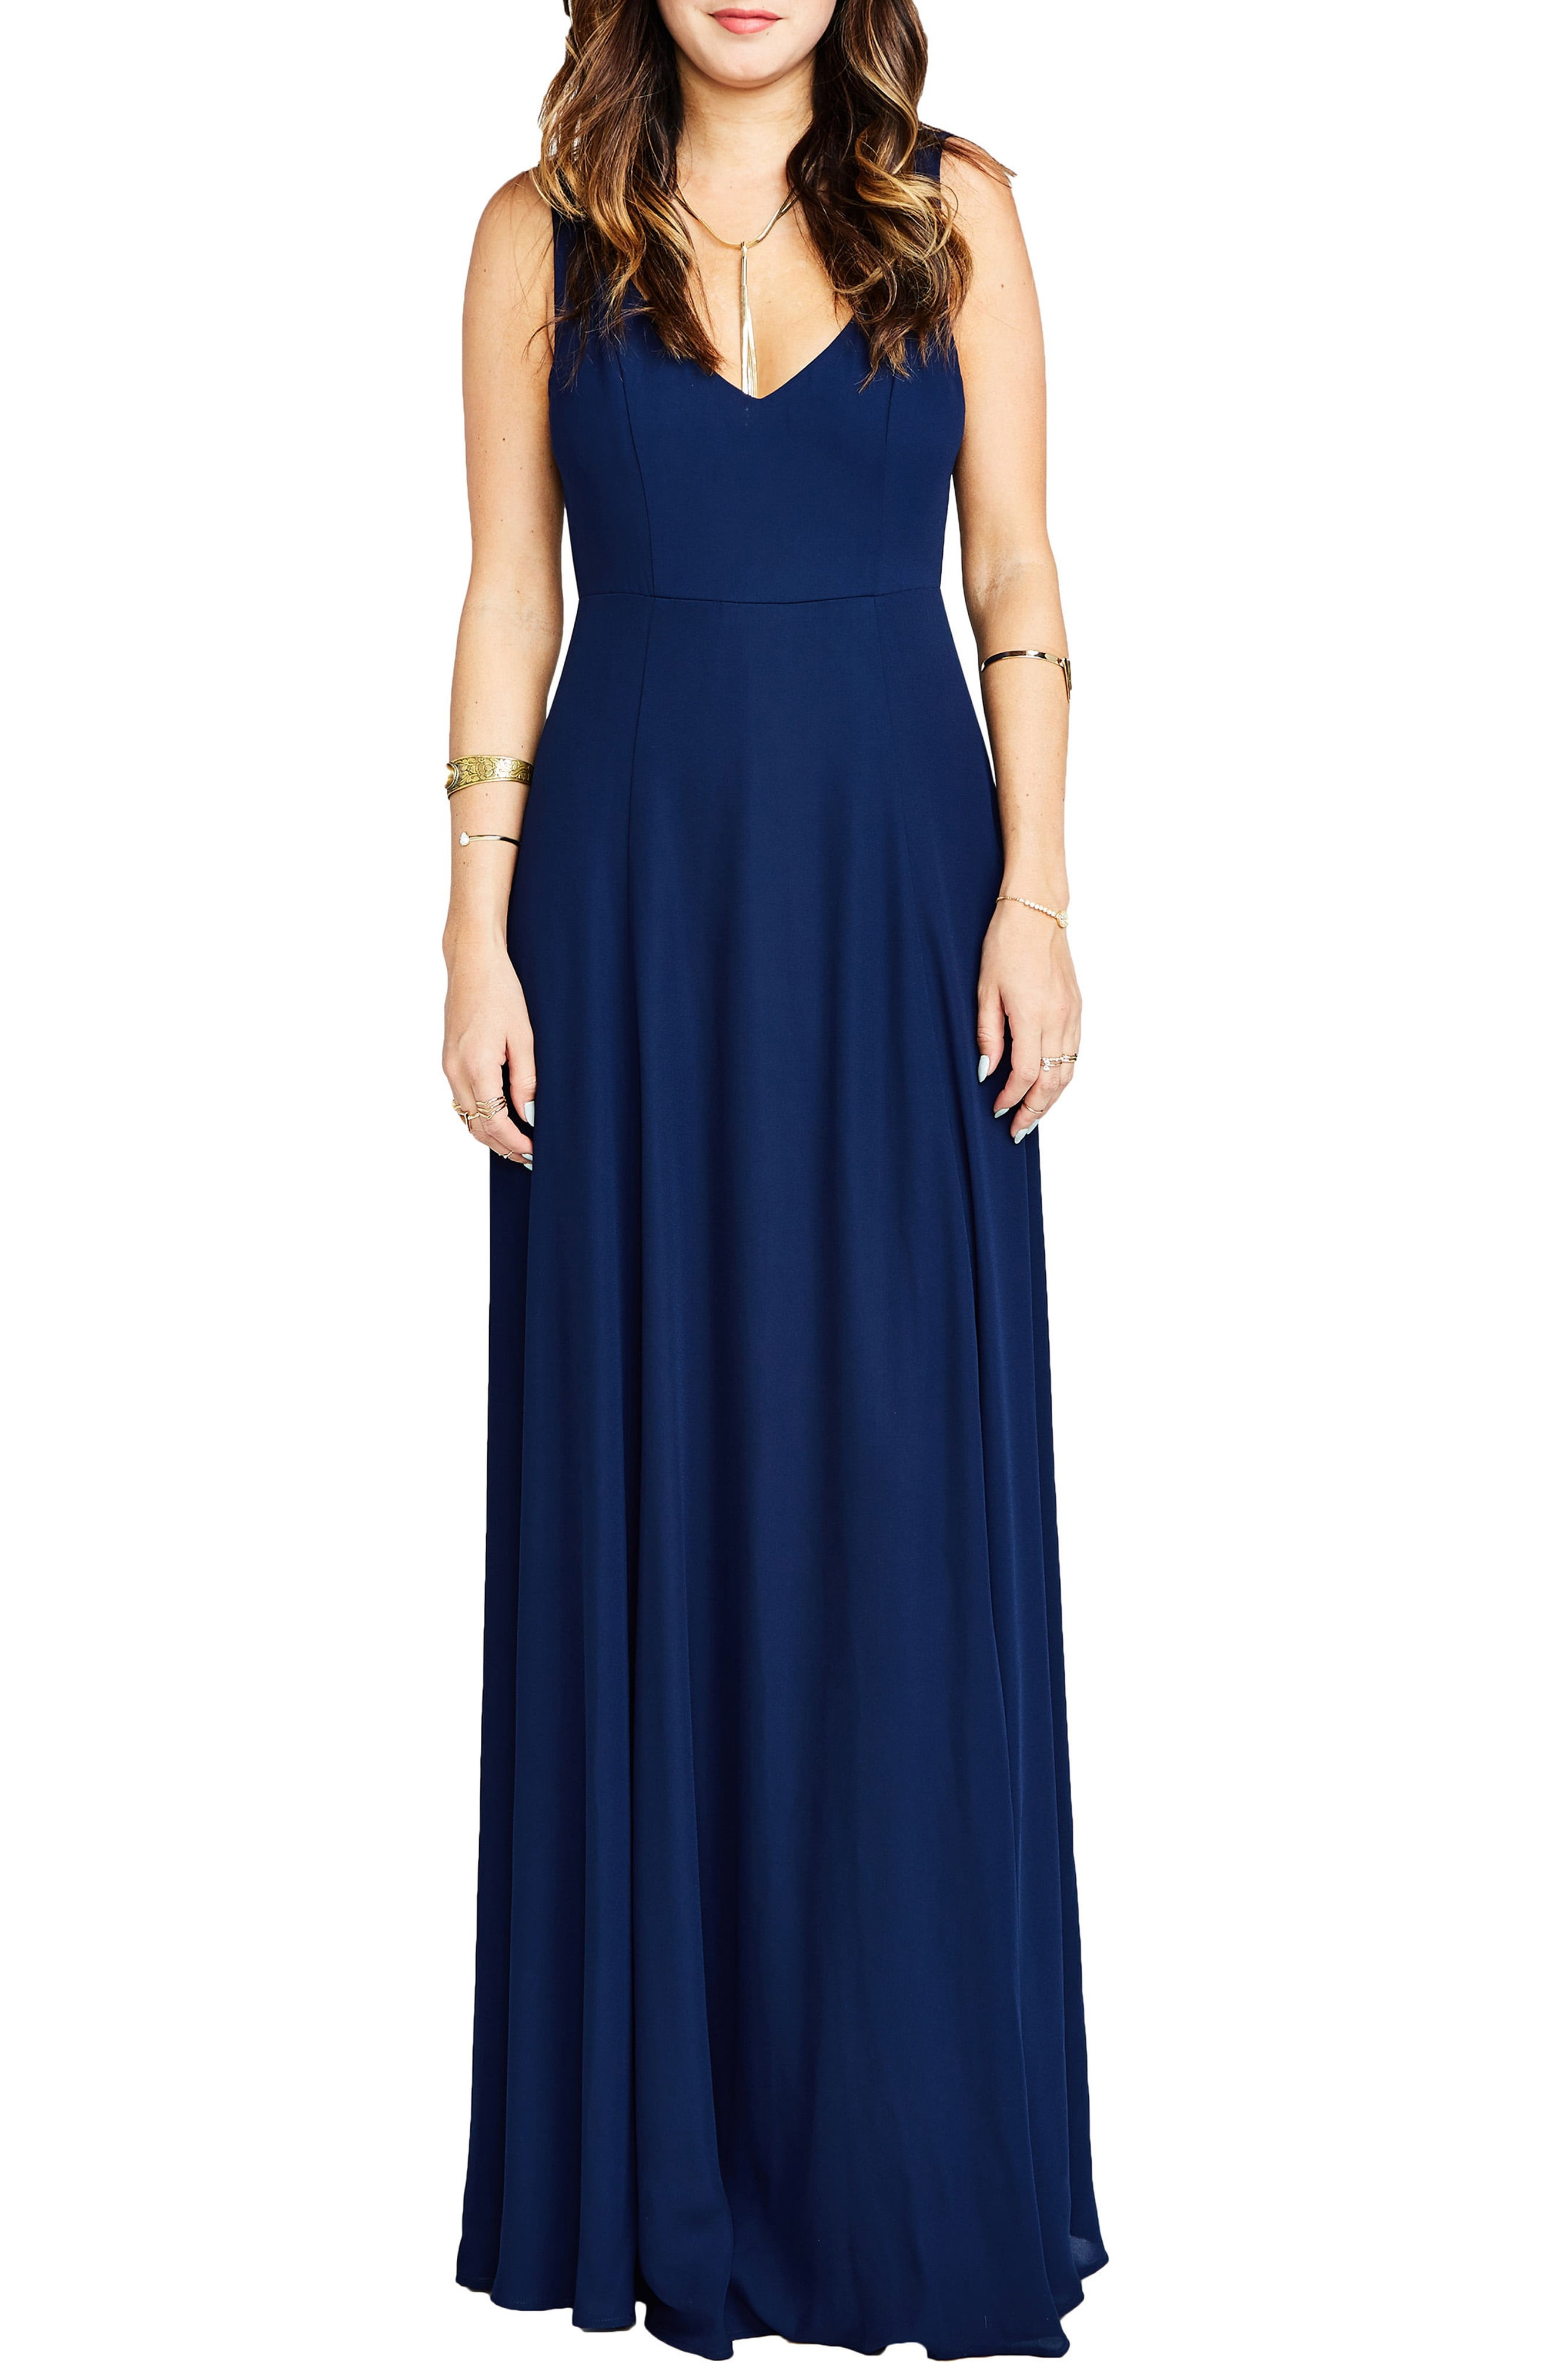 Dark blue bridesmaid dresses navy blue bridesmaid dresses dark blue bridesmaid dresses ombrellifo Image collections